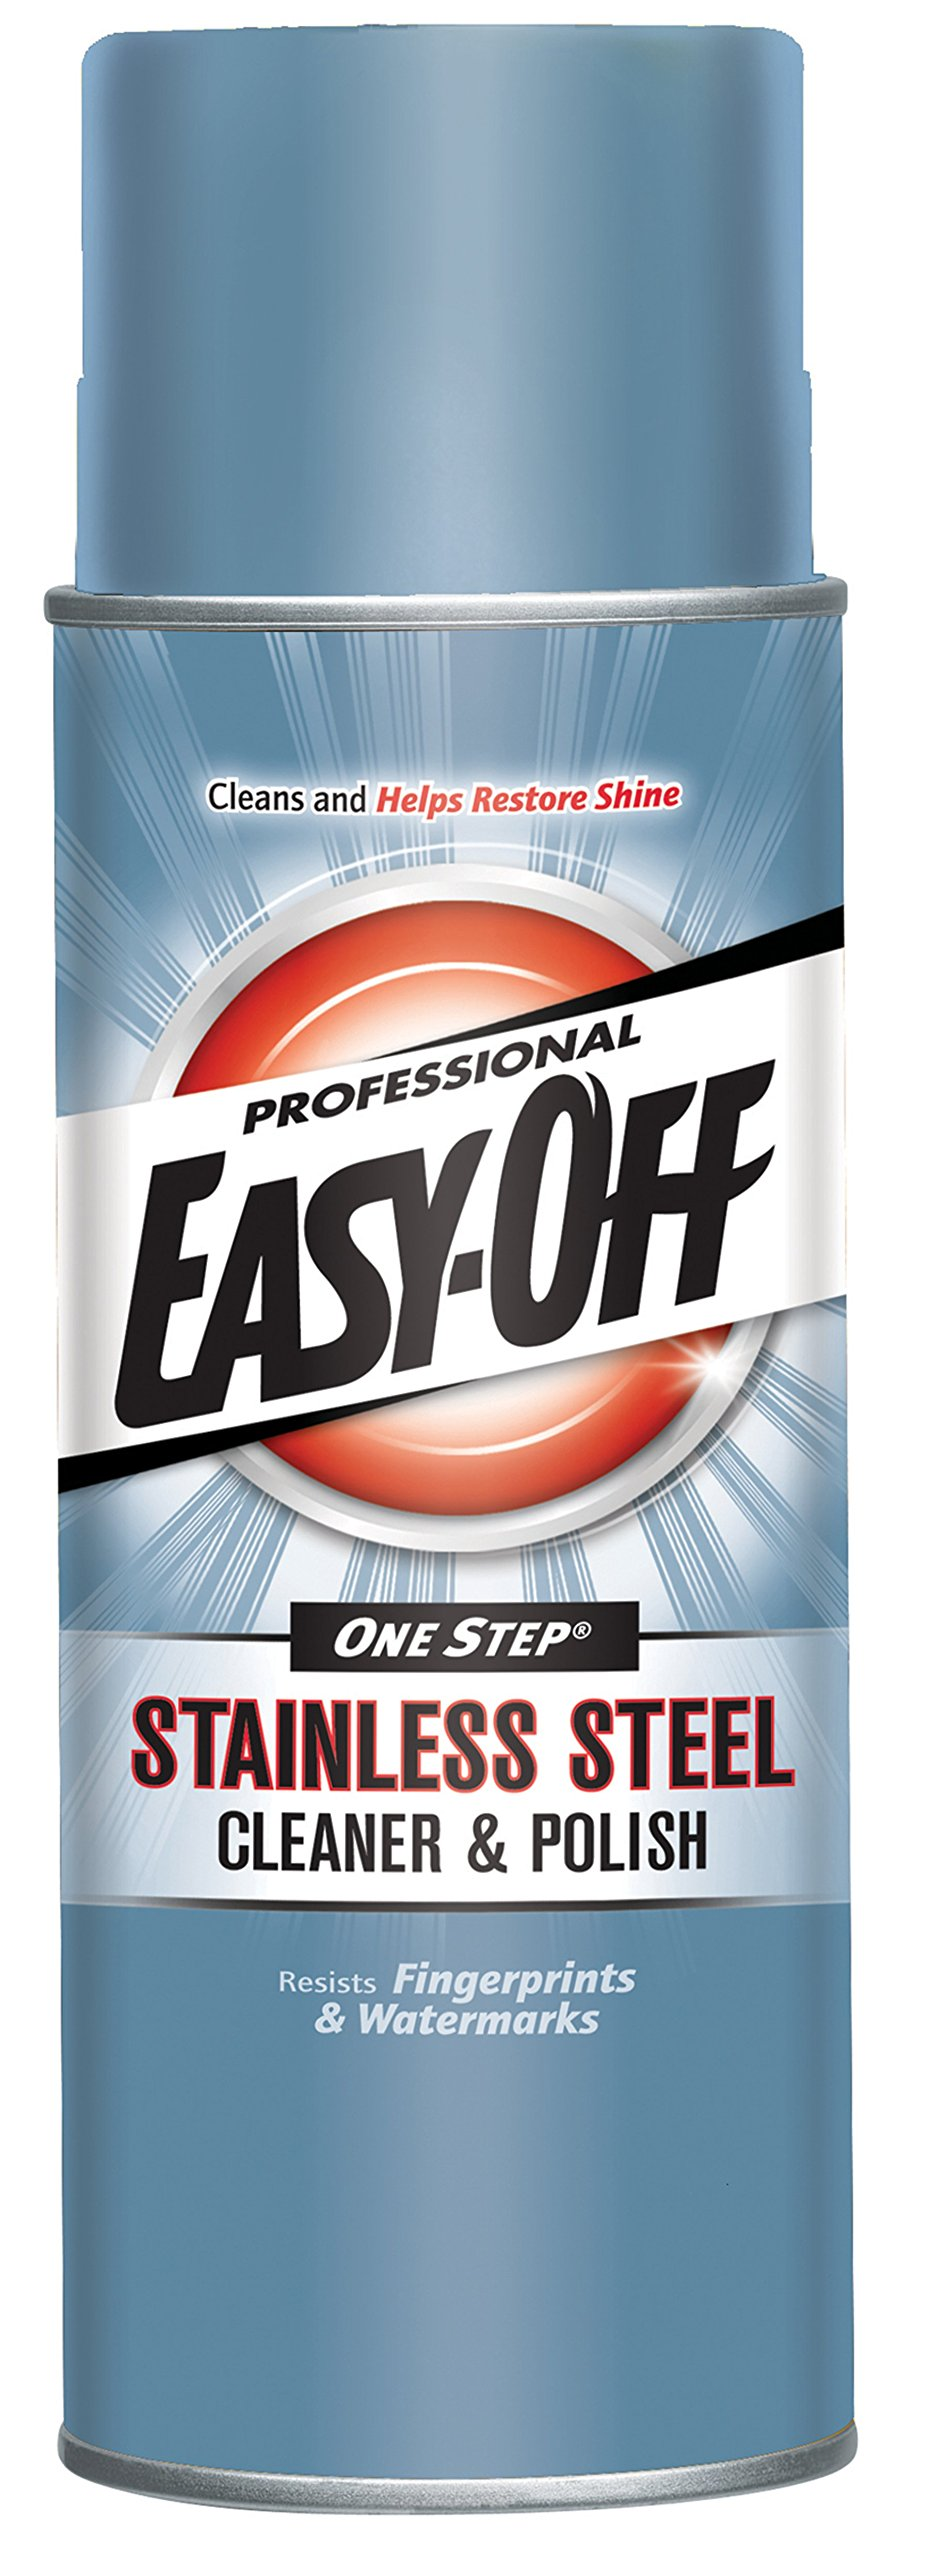 Easy Off Professional Stainless Steel Cleaner & Polish, 17 oz Can, for Grills Ovens